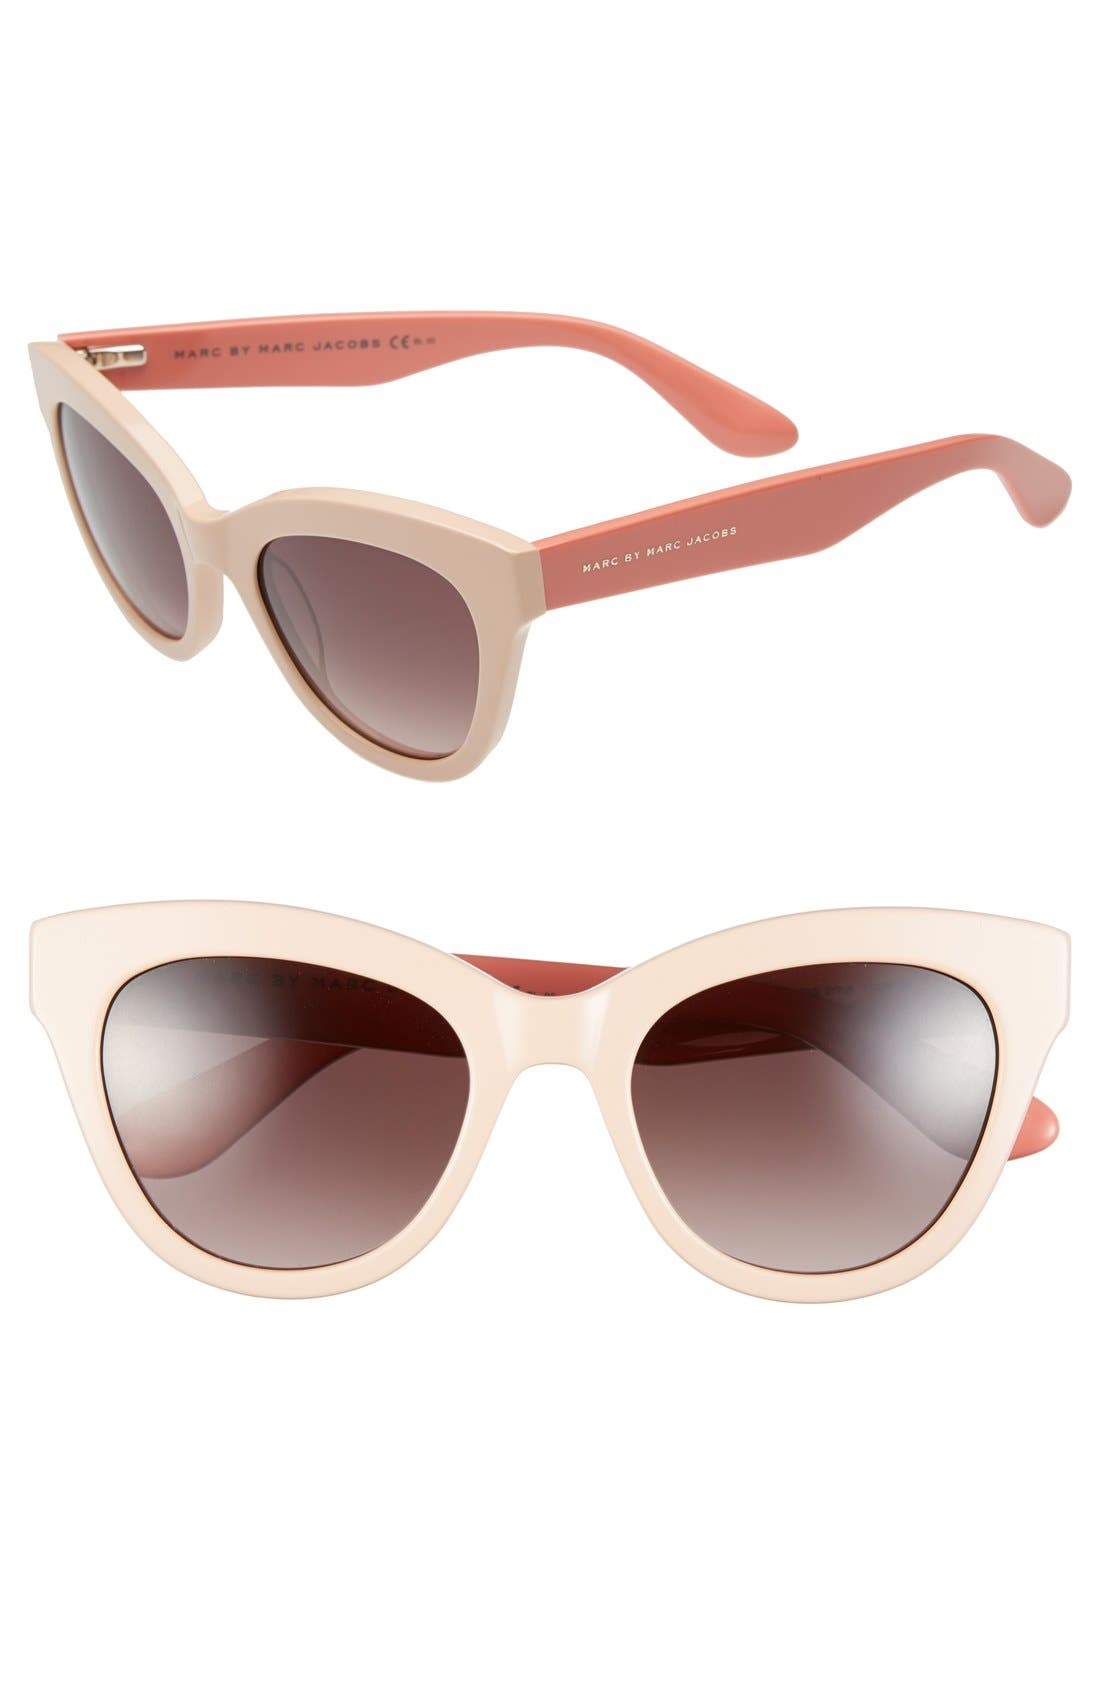 Main Image - MARC BY MARC JACOBS Retro 51mm Sunglasses